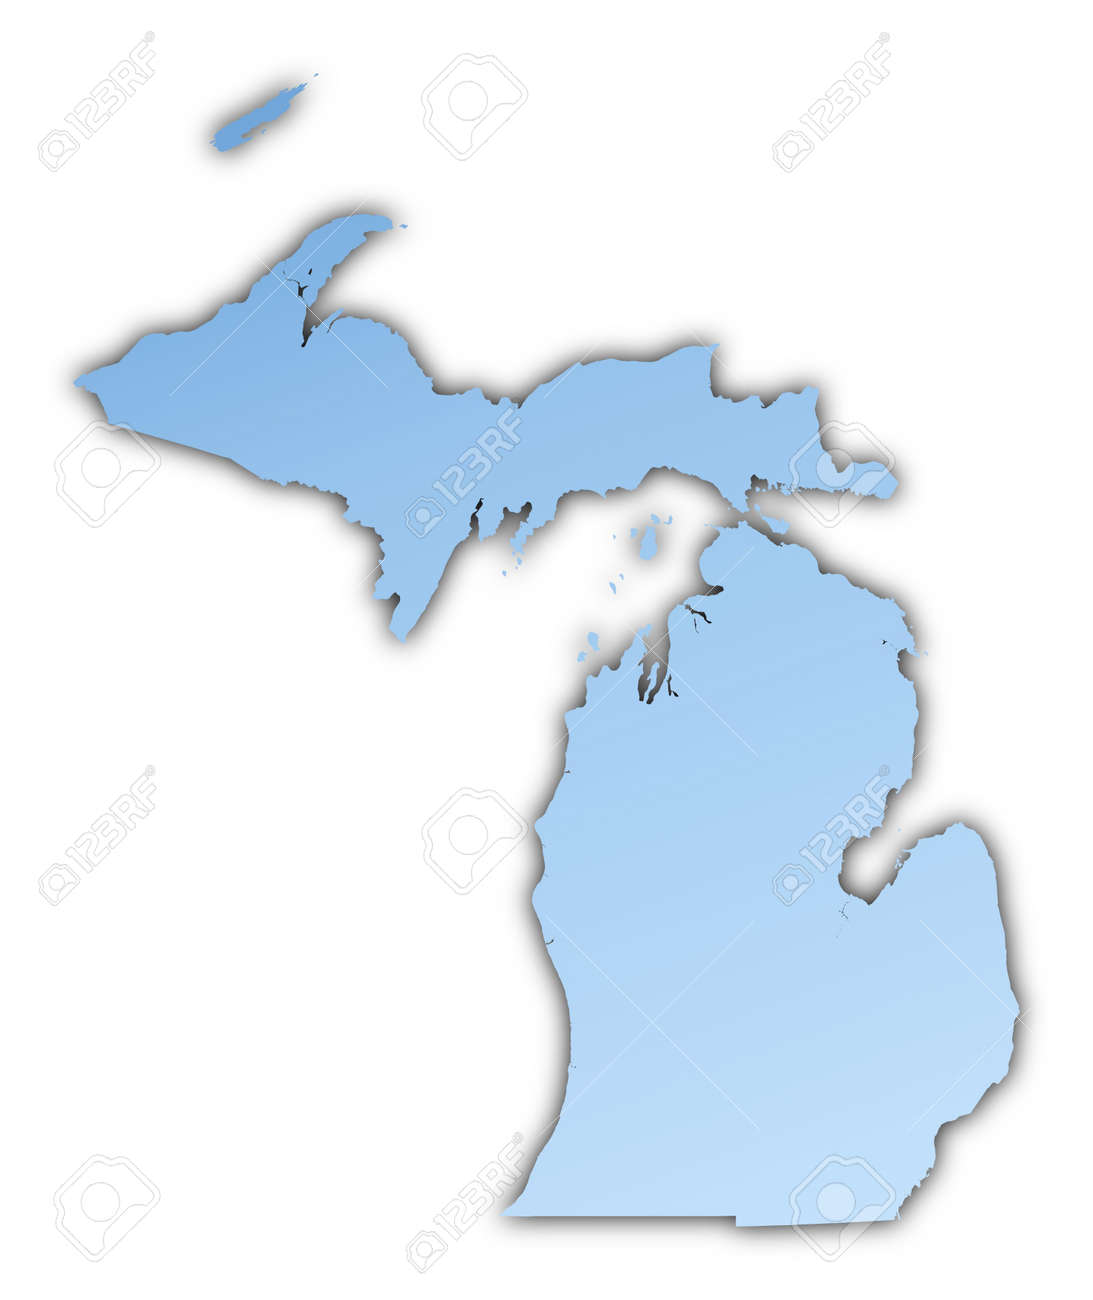 Michigan State Usa Vector Map Isolated Stock Vector - Michigan in usa map